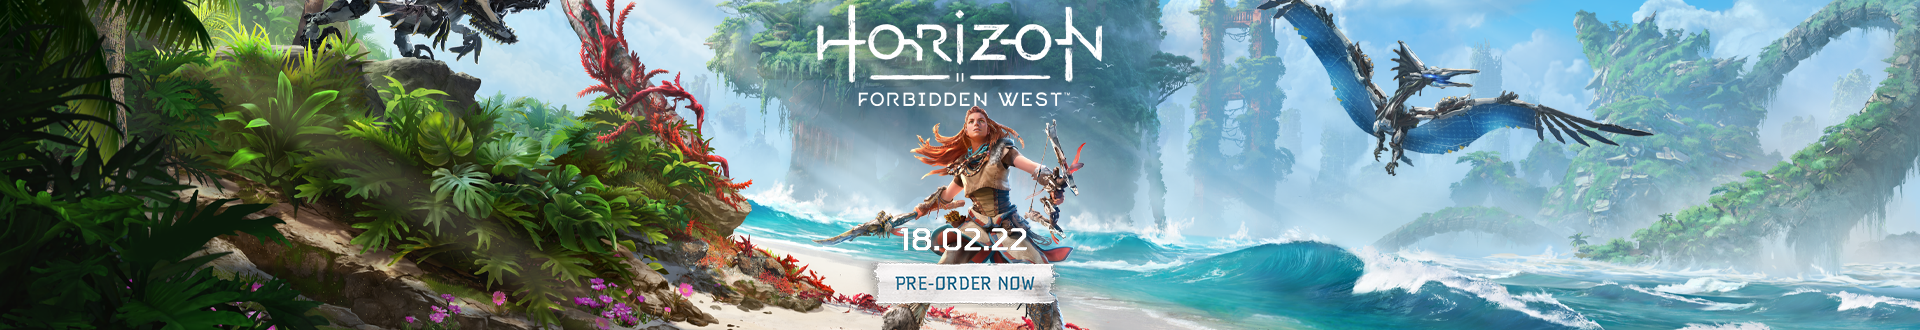 Join Aloy as she braves the Forbidden West, a deadly frontier that conceals mysterious new threats.